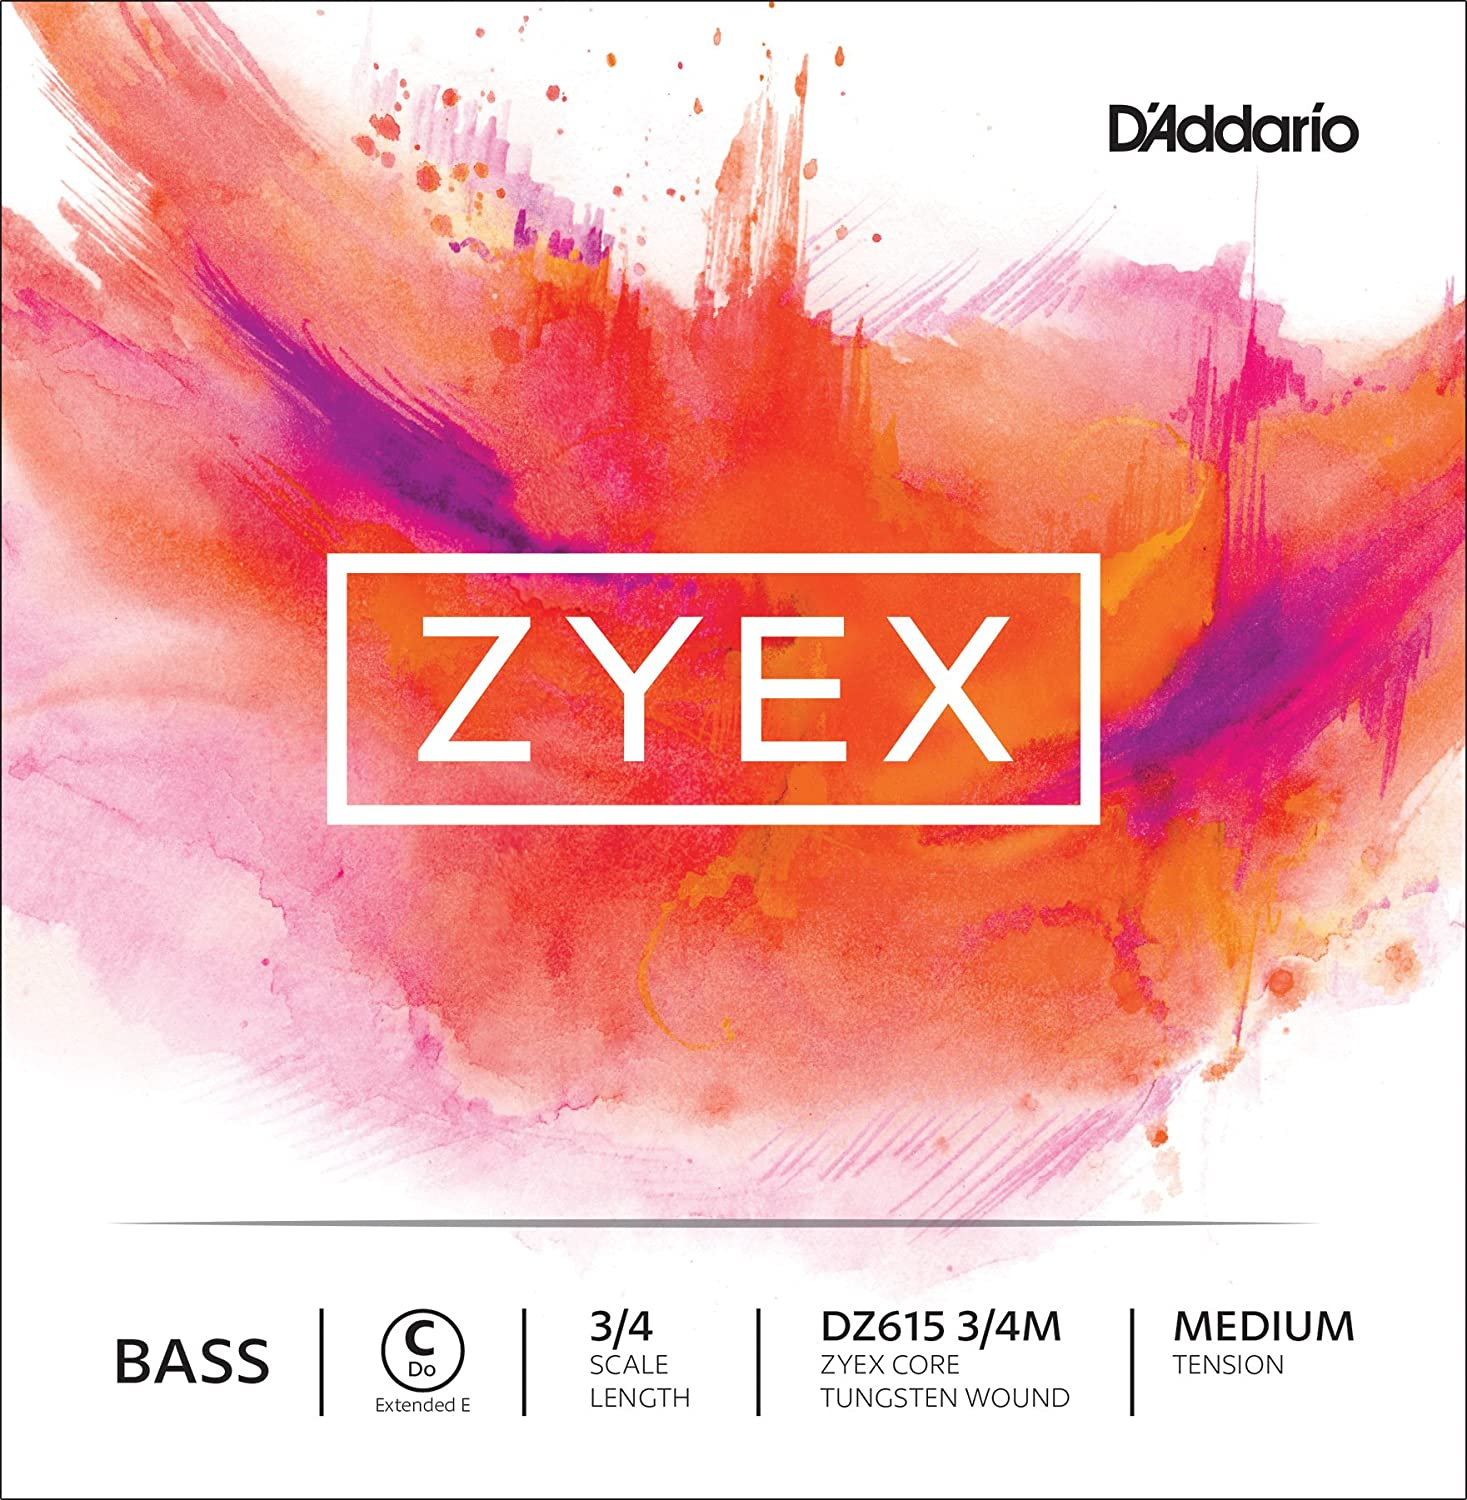 D'Addario Zyex Bass Single C (Extended E) String, 3/4 Scale, Medium Tension D'Addario DZ615 3/4M